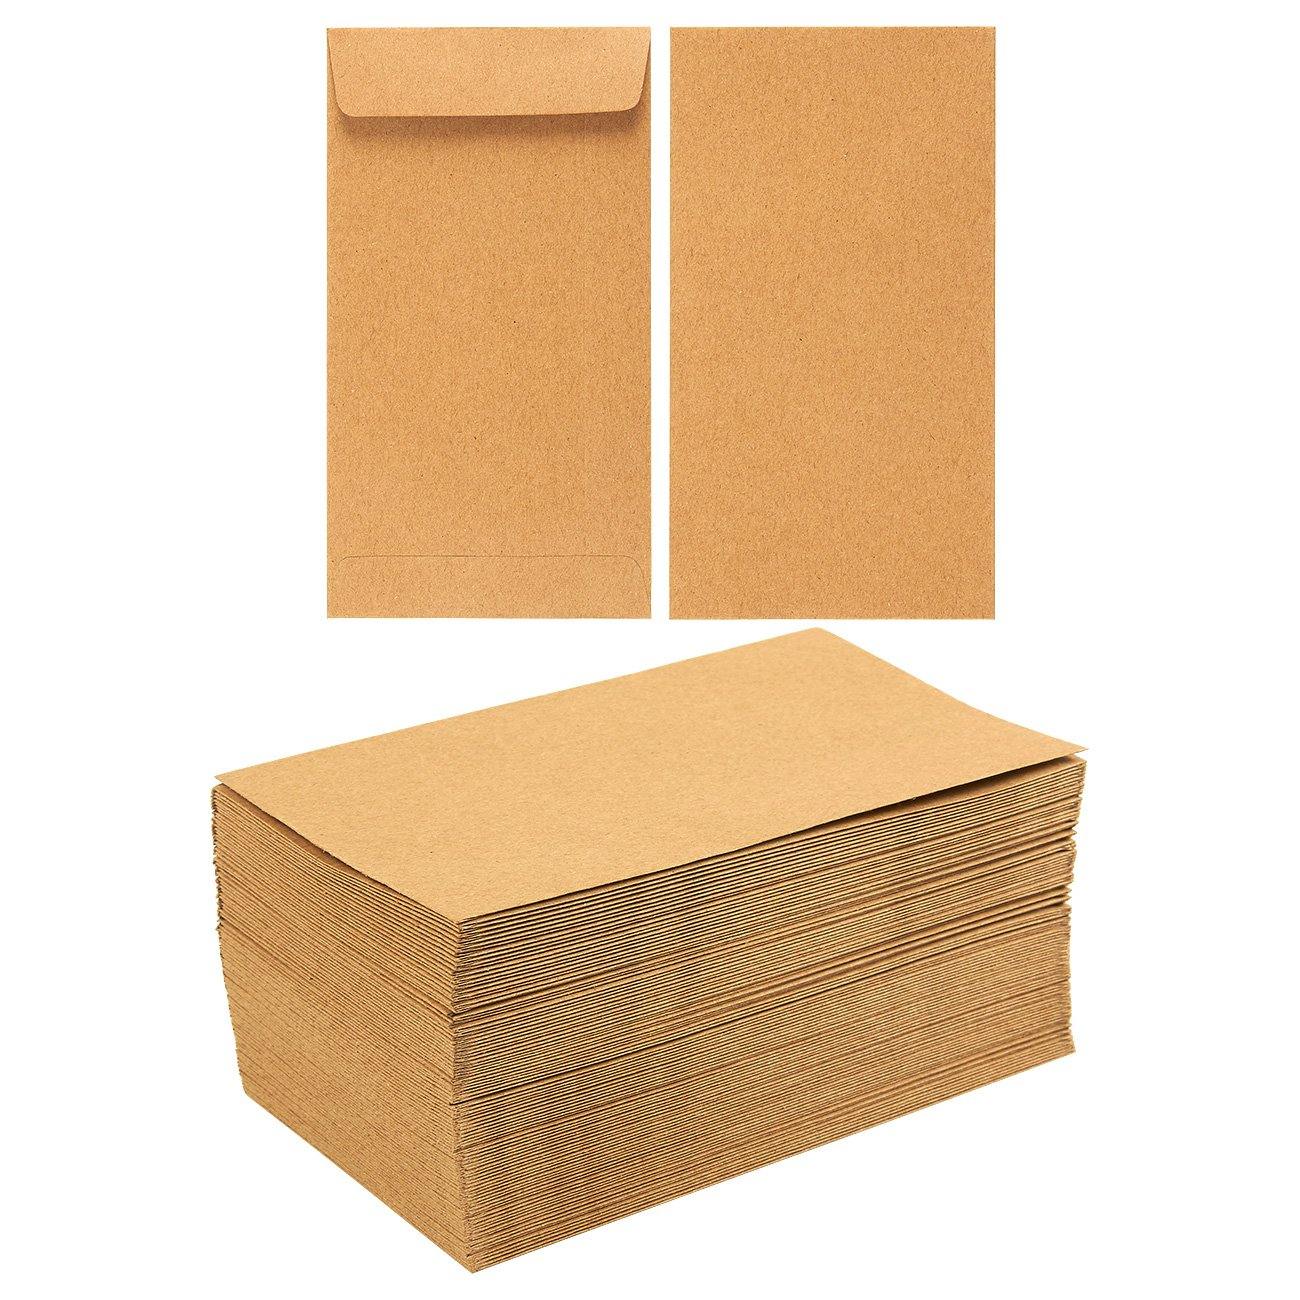 Juvale 100-Pack Coin Envelopes - Small Kraft Money Envelopes Currency Exchange, Business Use, Personal Gift-Giving, Brown - 3.5 x 6.5 inches